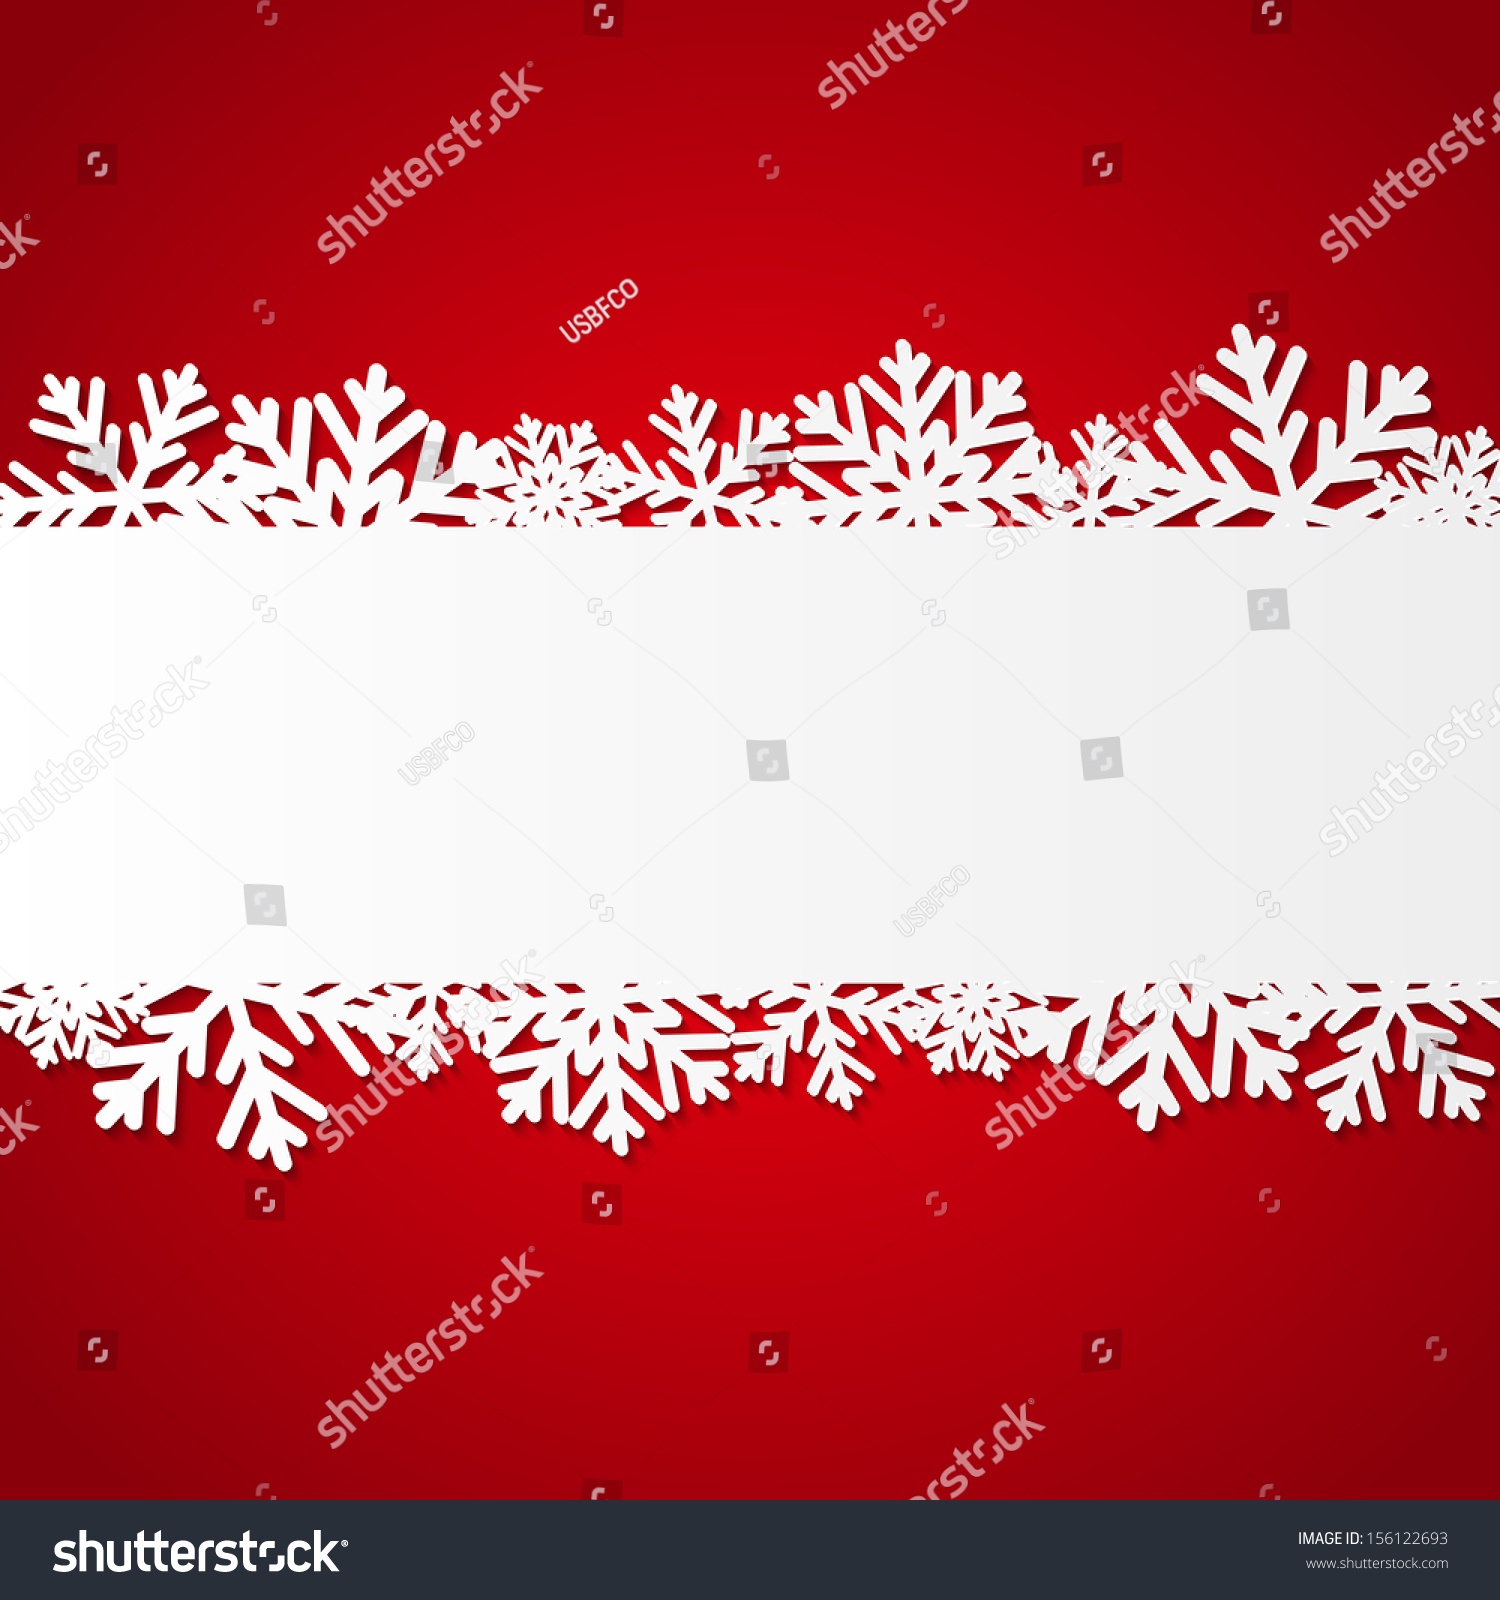 red christmas background paper snowflakes stock vector 156122693